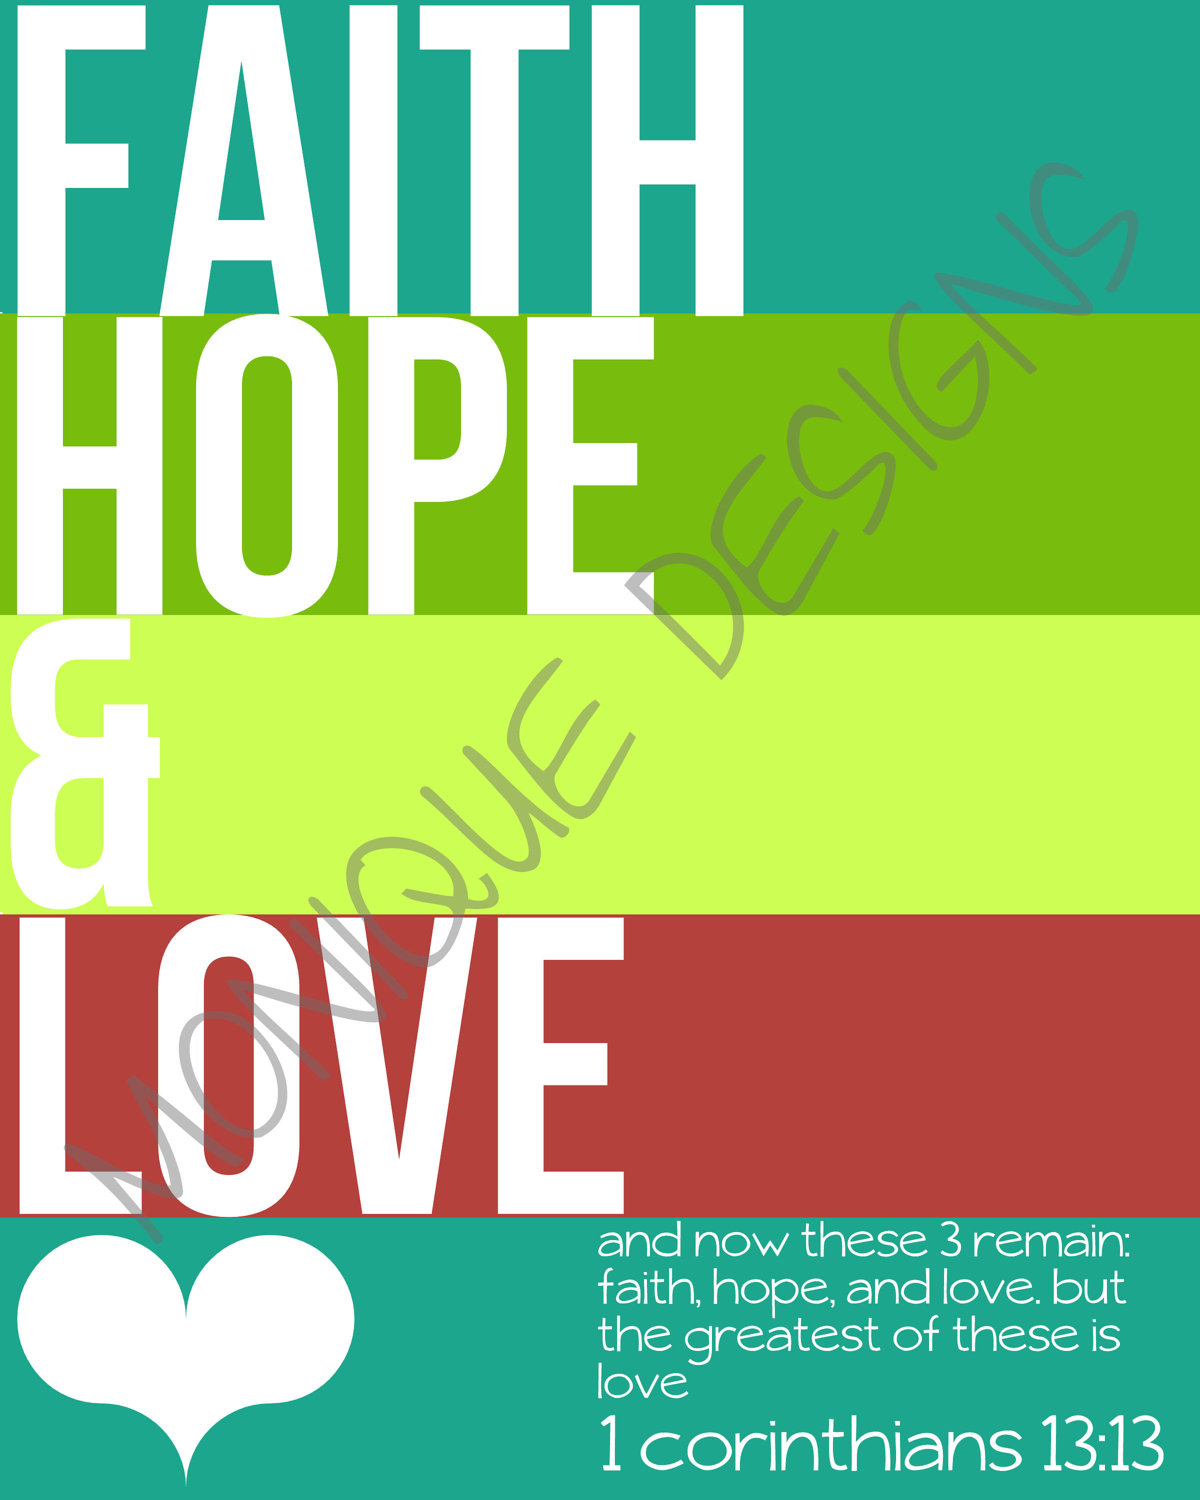 Love And Faith Quotes: Bible Quotes On Faith Hope And Love. QuotesGram